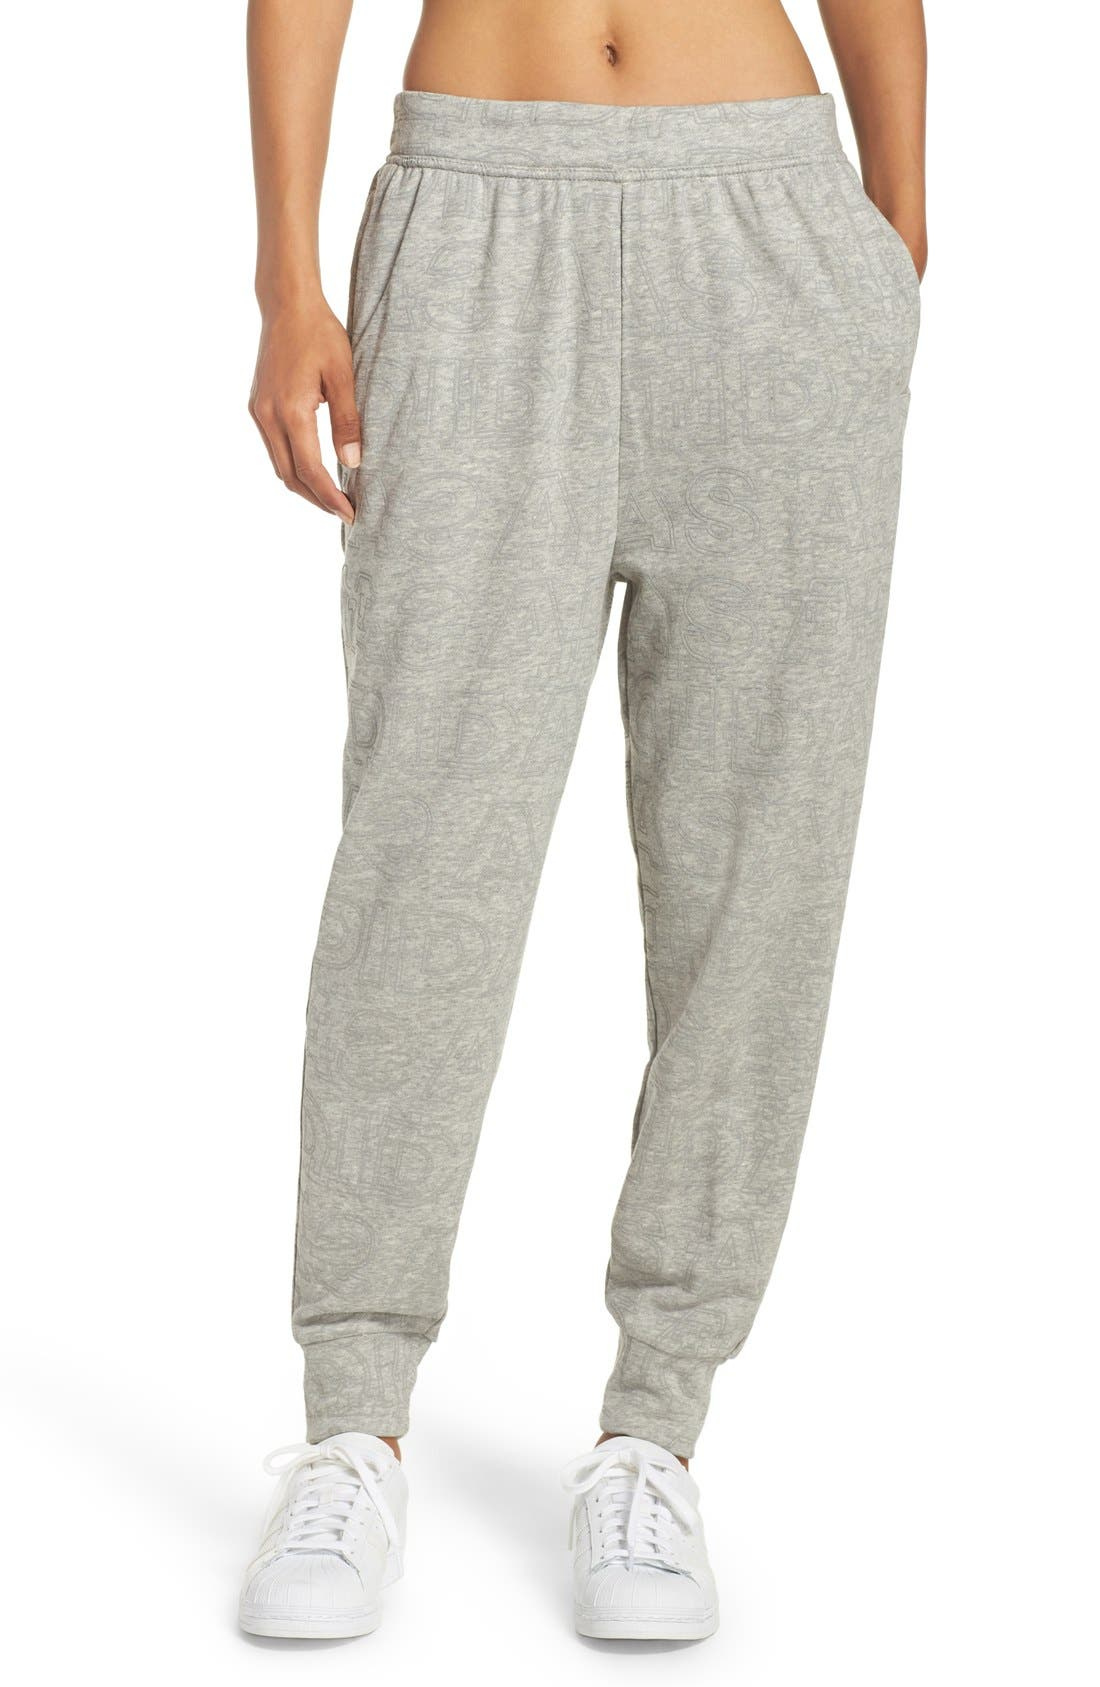 ADIDAS,                             Boyfriend Lounge Pants,                             Main thumbnail 1, color,                             035